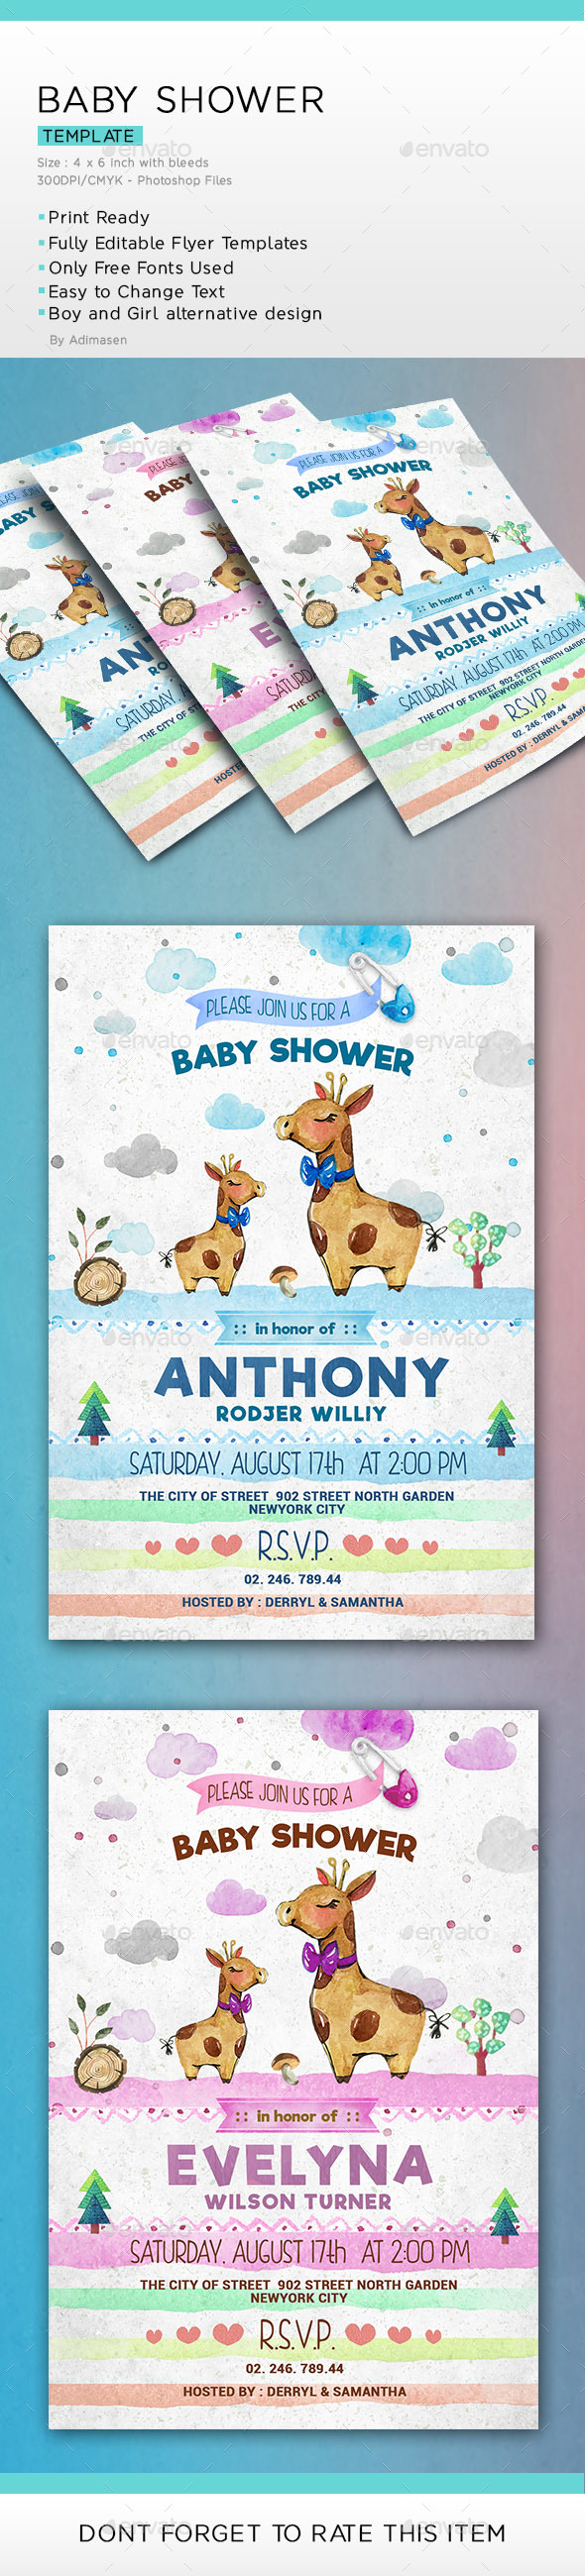 Baby Shower Watercolor - Invitations Cards & Invites